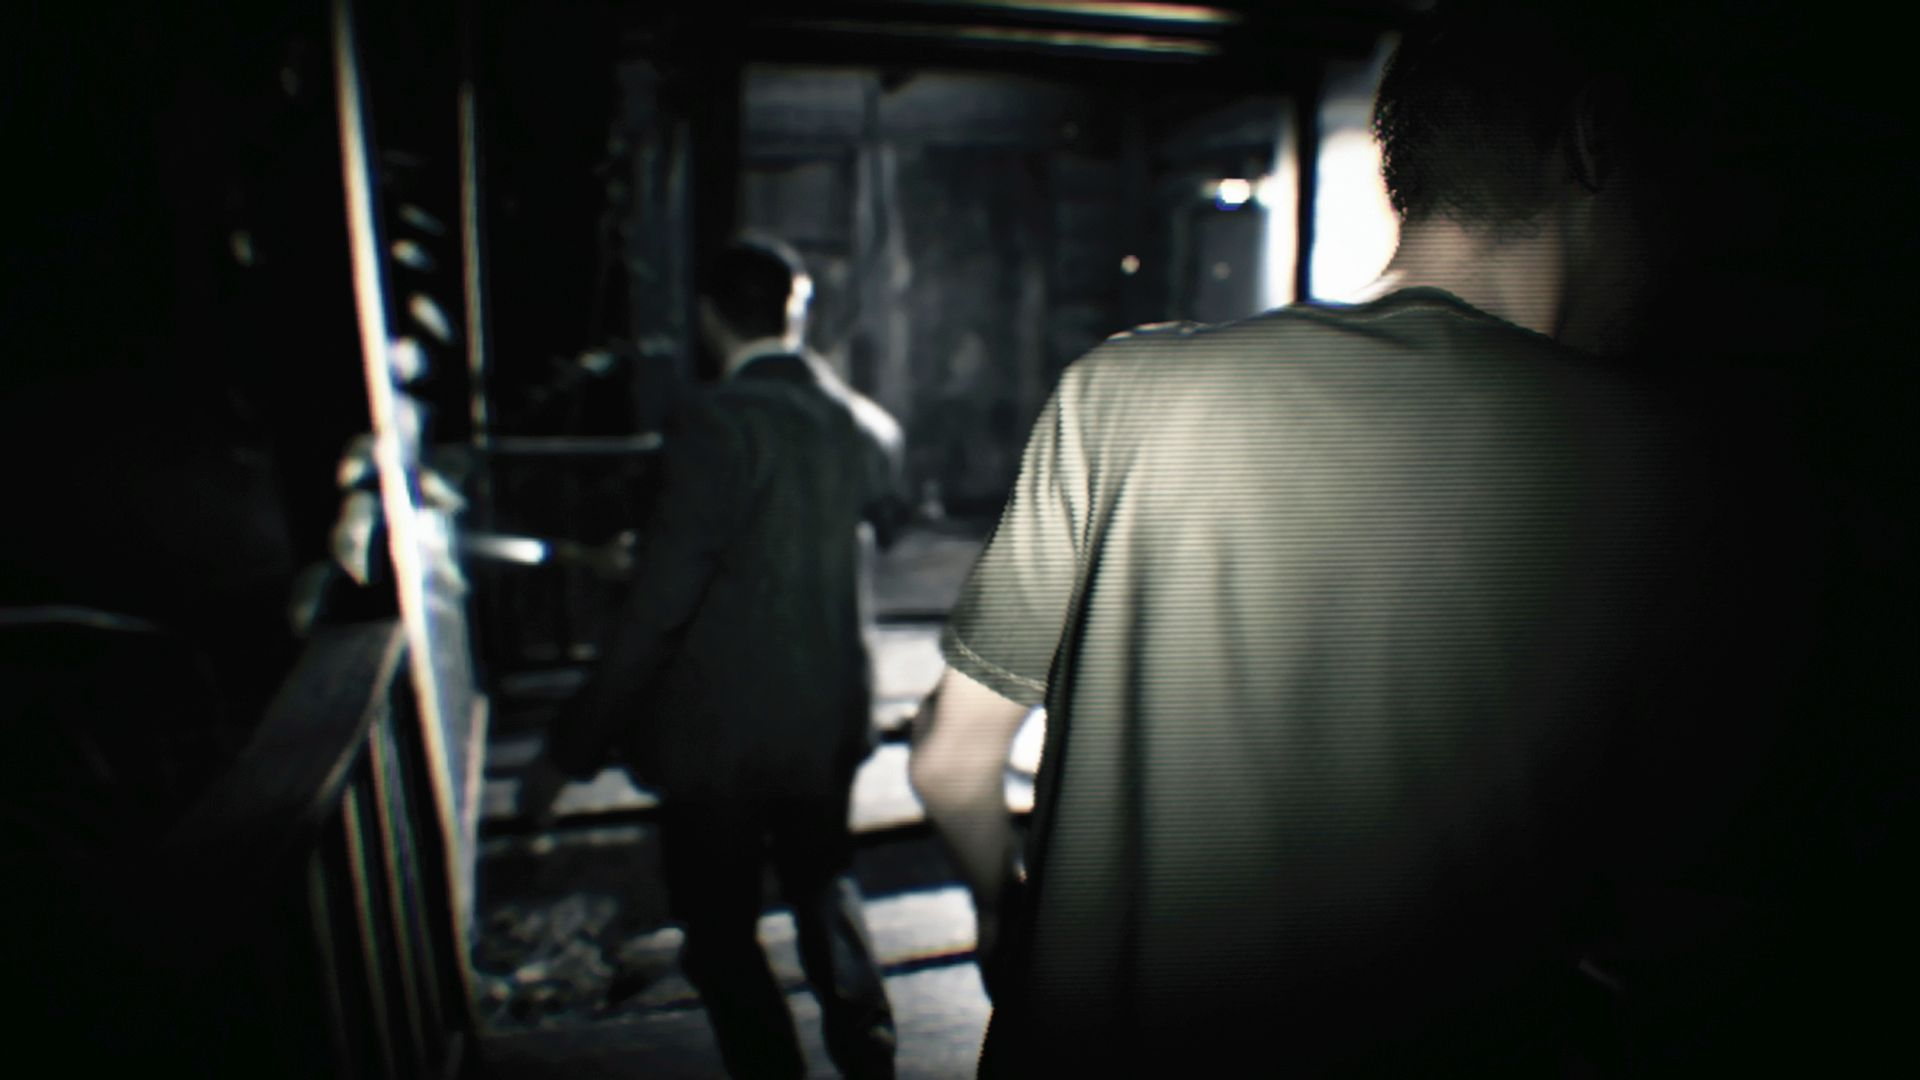 Resident Evil 7 Vr Is Exclusive To Playstation Vr For A Year